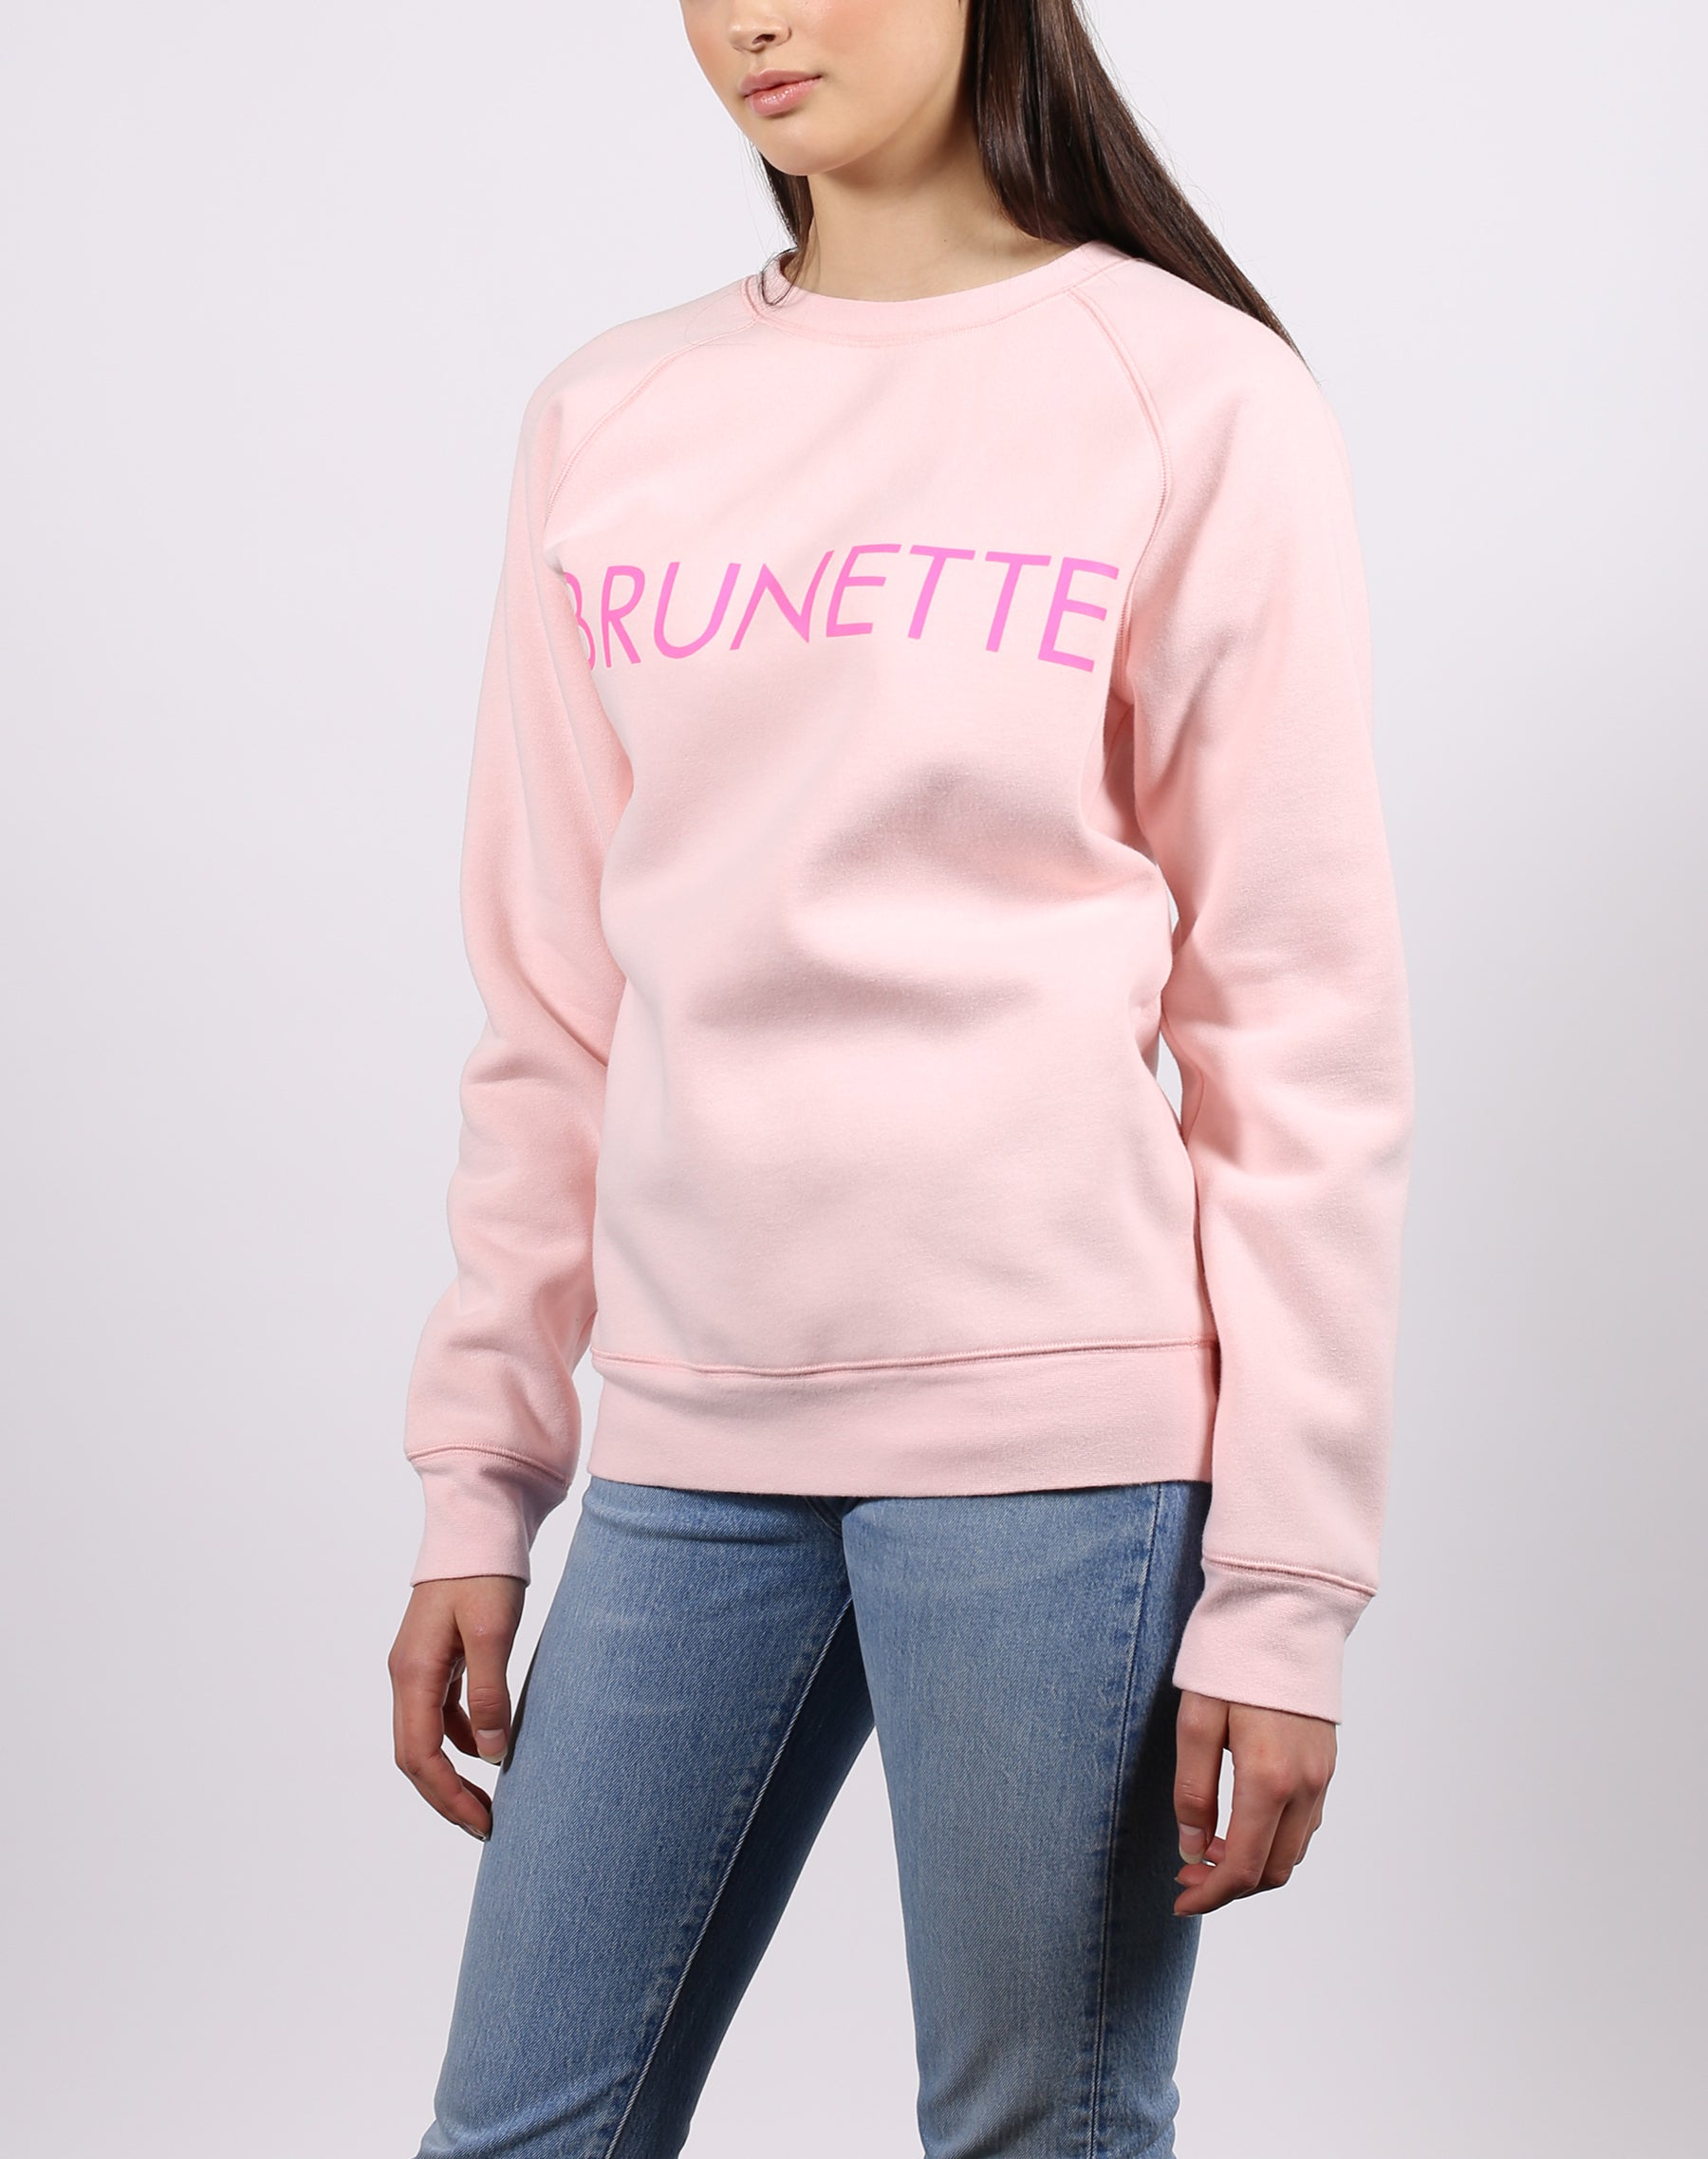 this is a photo of the brunette classic crew neck sweatshirt in ballet slipper by brunette the label.